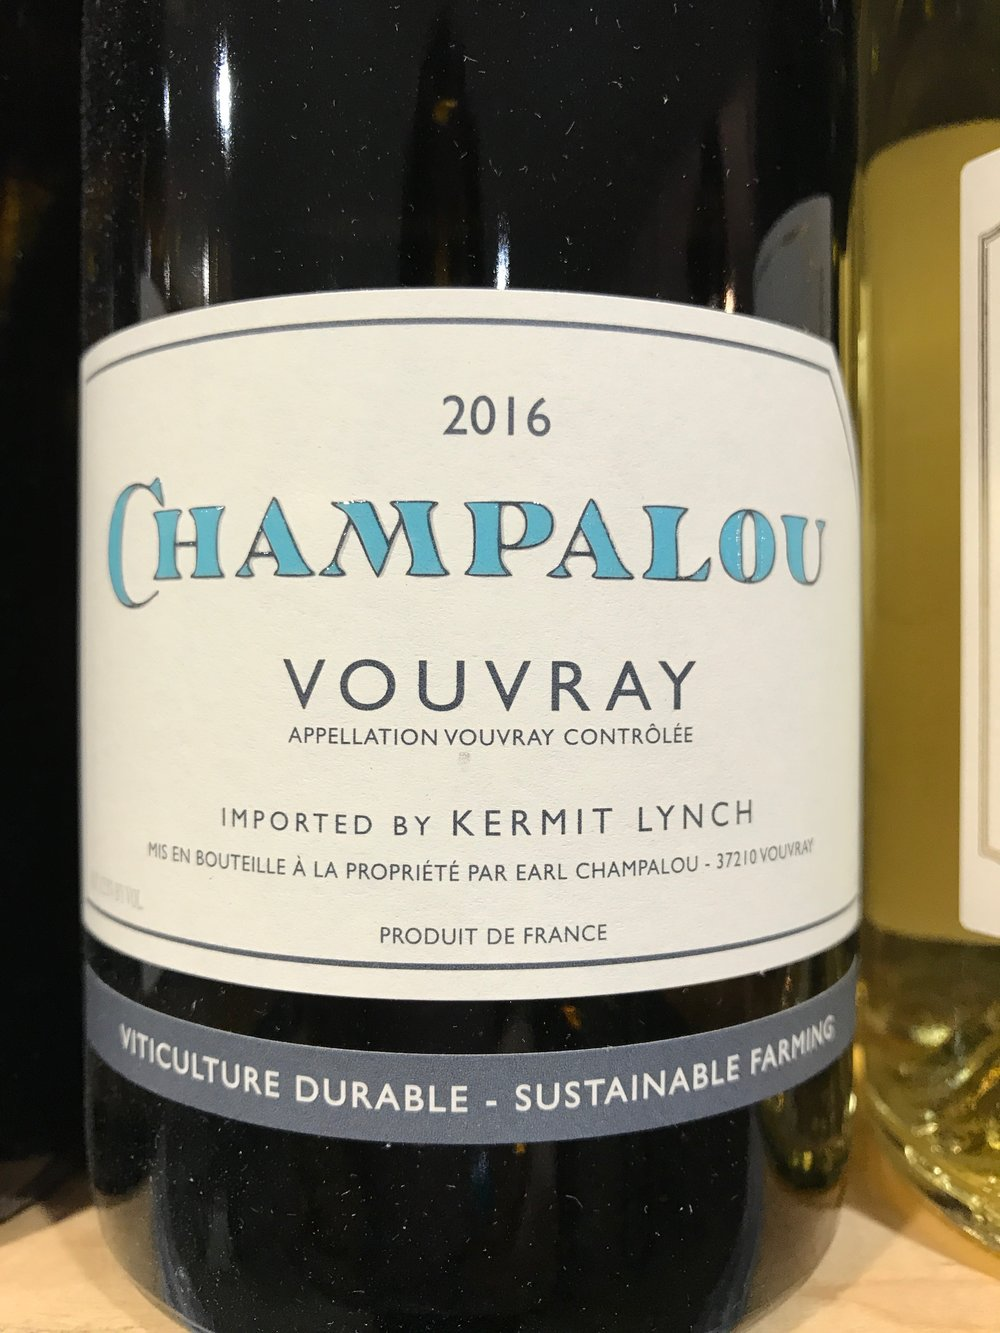 Started in 1983, Champalou has become one of the most acclaimed wineries in Vouvray.  Try this dry Chenin Blanc with the pork dish.